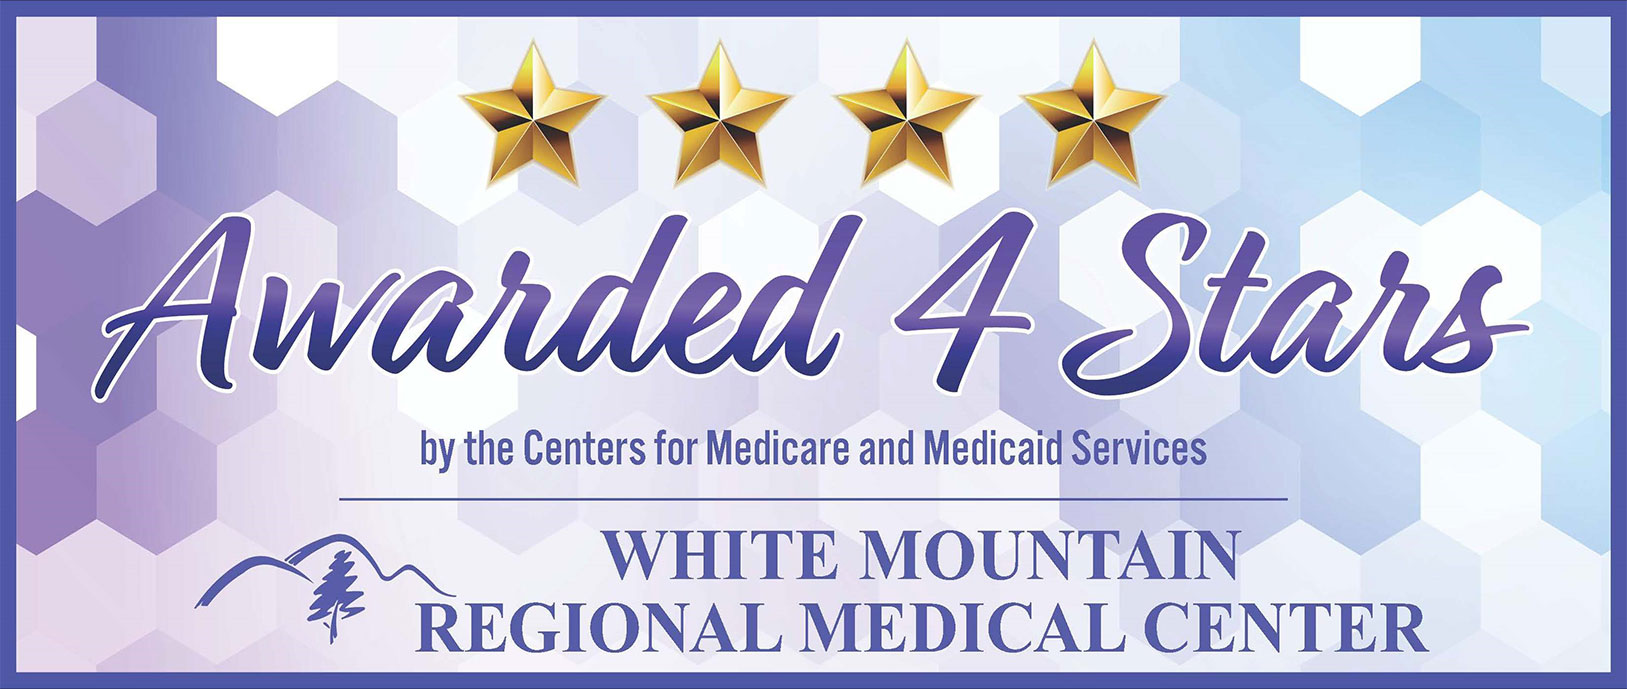 White Mountain Regional Medical Center Awarded four stars! by Medicare and Medicaid services